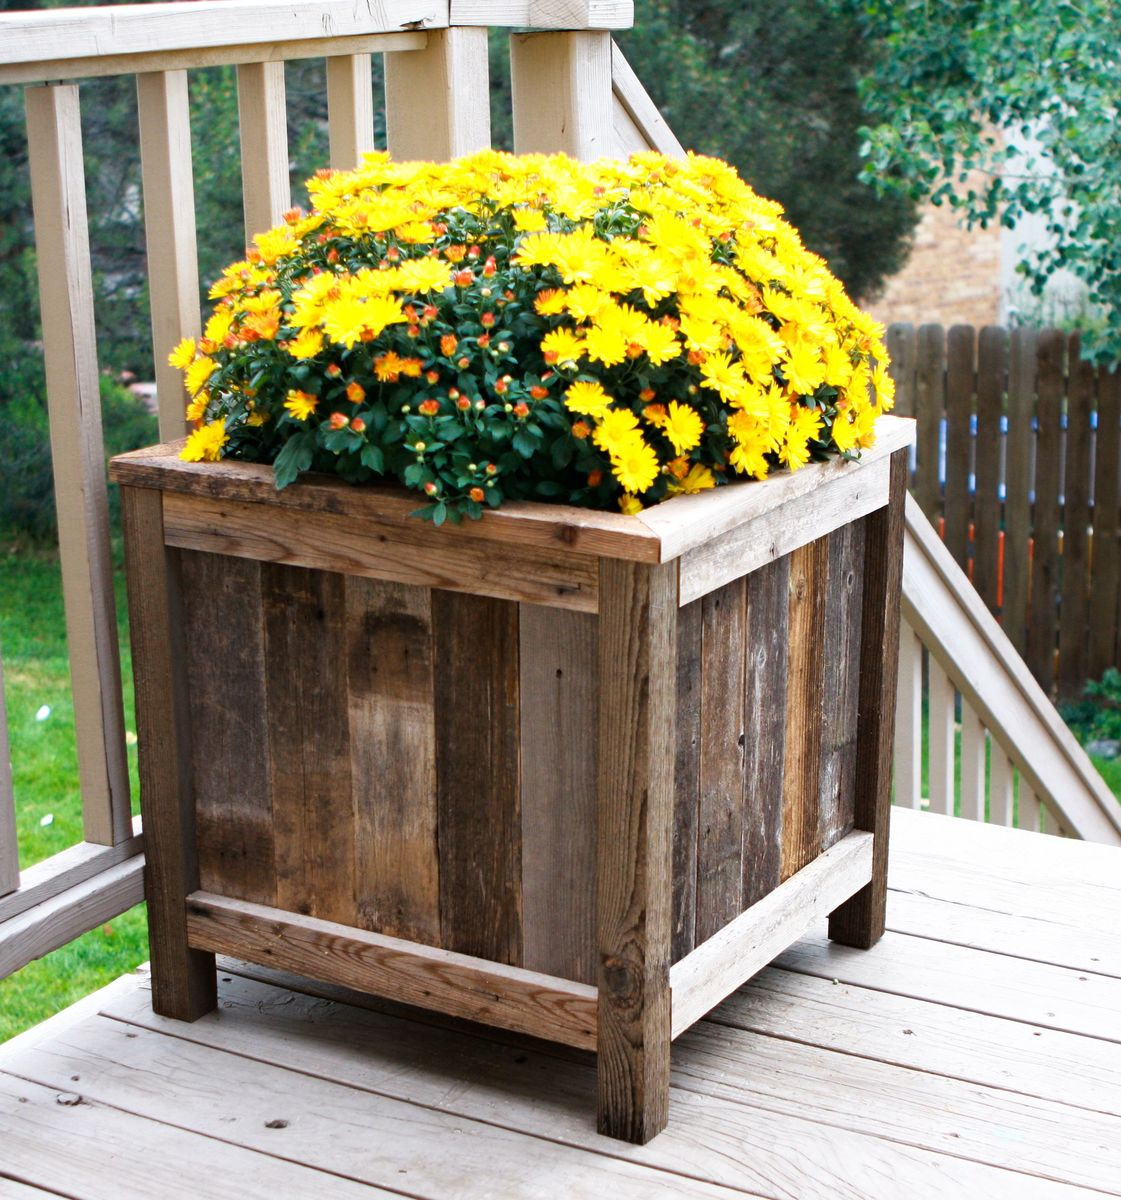 beautiful reclaimed wood planter box made by a reader with yellow flowers